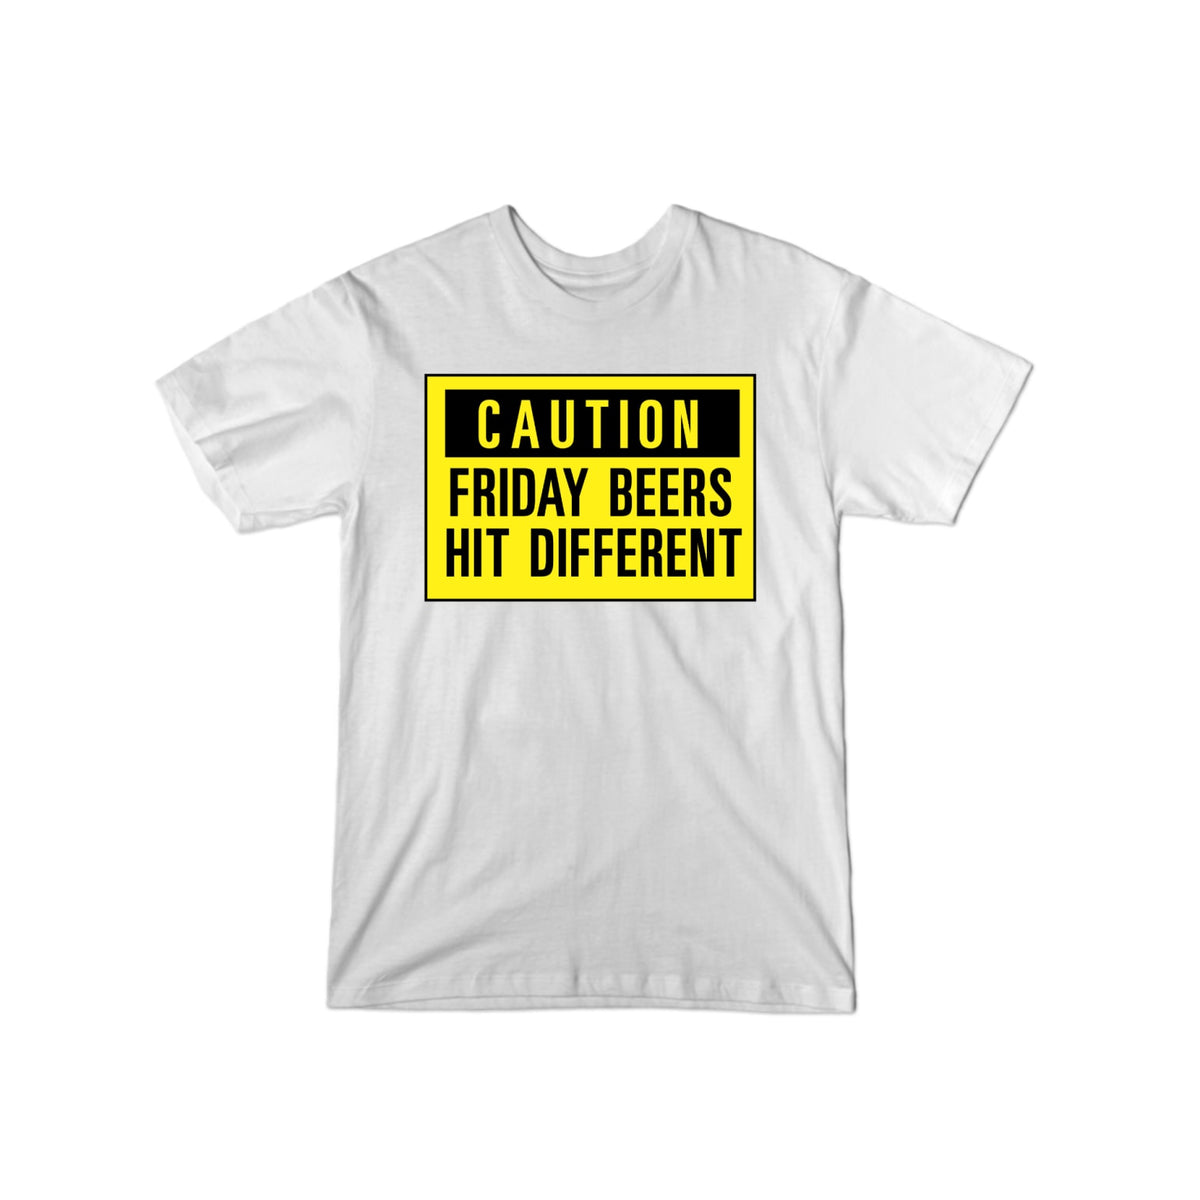 Friday Beers Caution T-Shirt